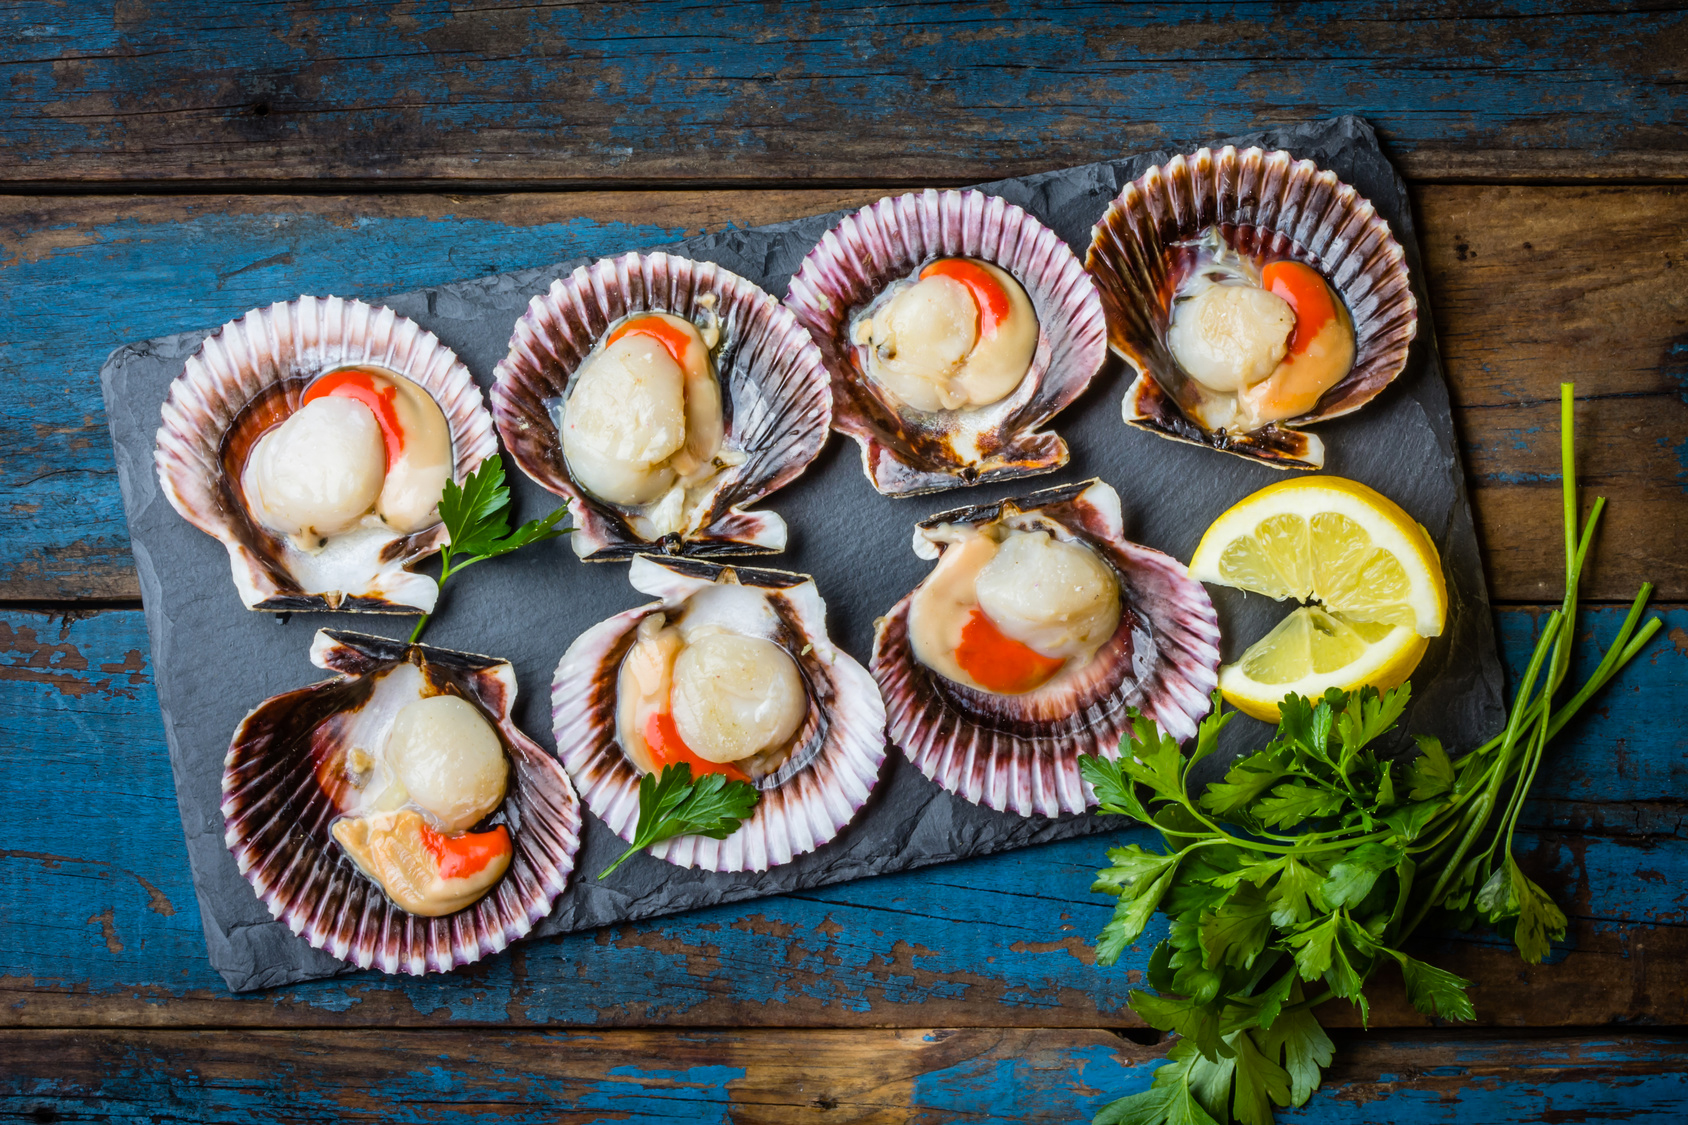 Rosemary and lemon scallop skewers